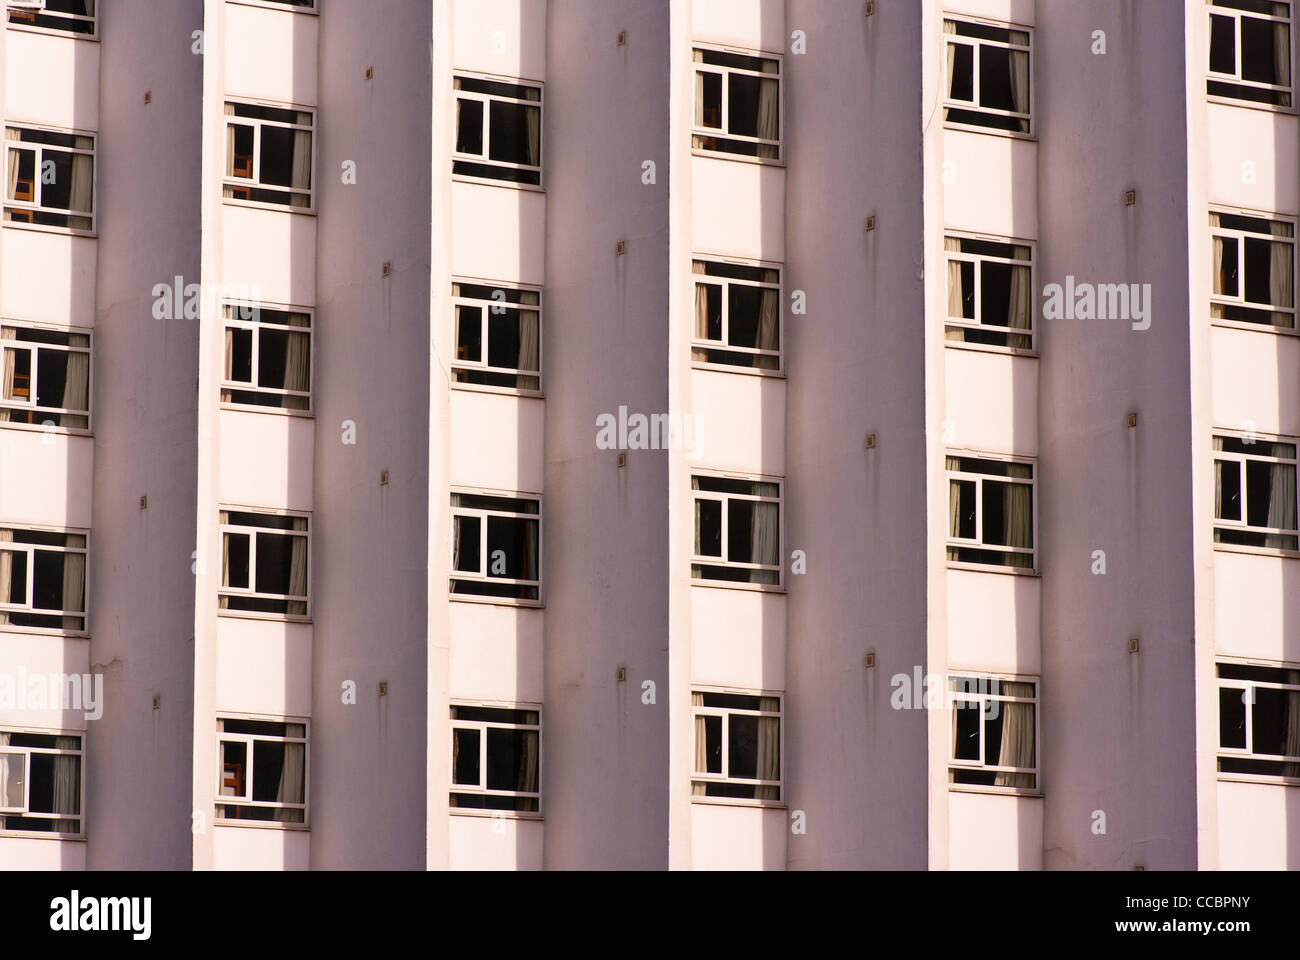 Symmetric Symmetrical Symmetrically Pattern Patterns Windows In A Modern Concrete Building - Stock Image